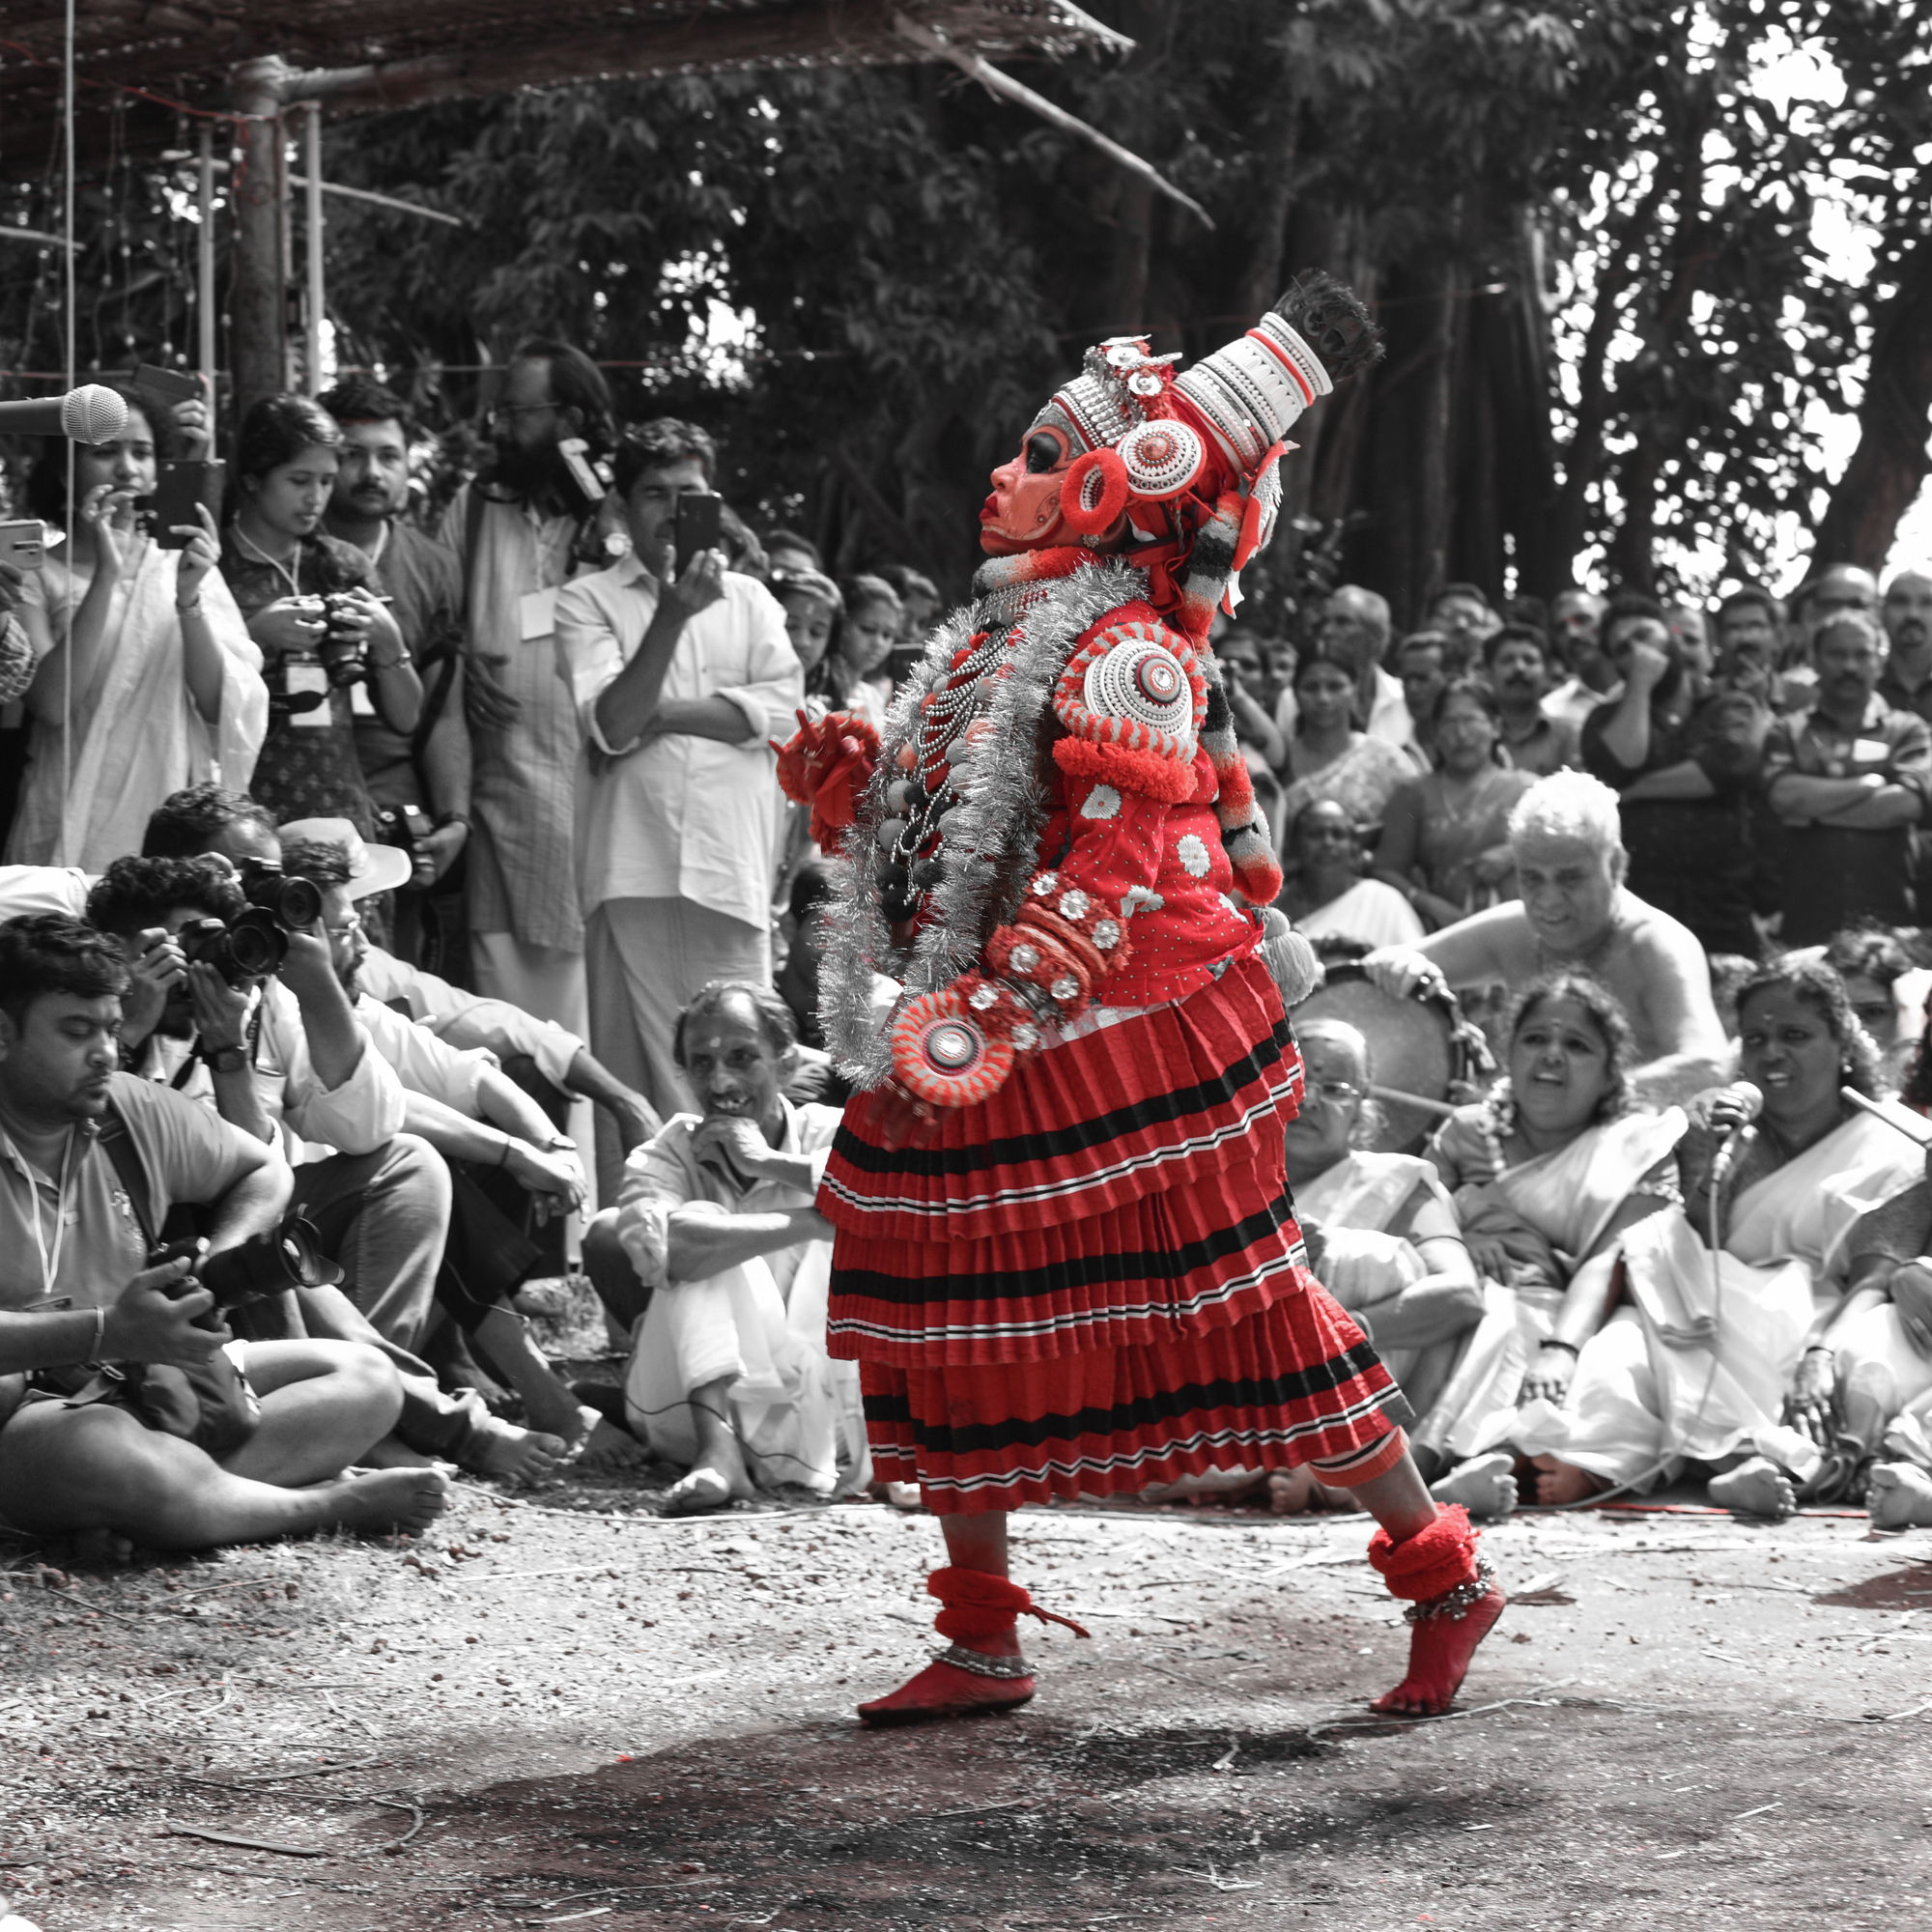 It was a dance show in a traditional theyyam event in Kerala so that red costume stood out in the crowd , which showed how strong they are in culture and practices and how strong are womens